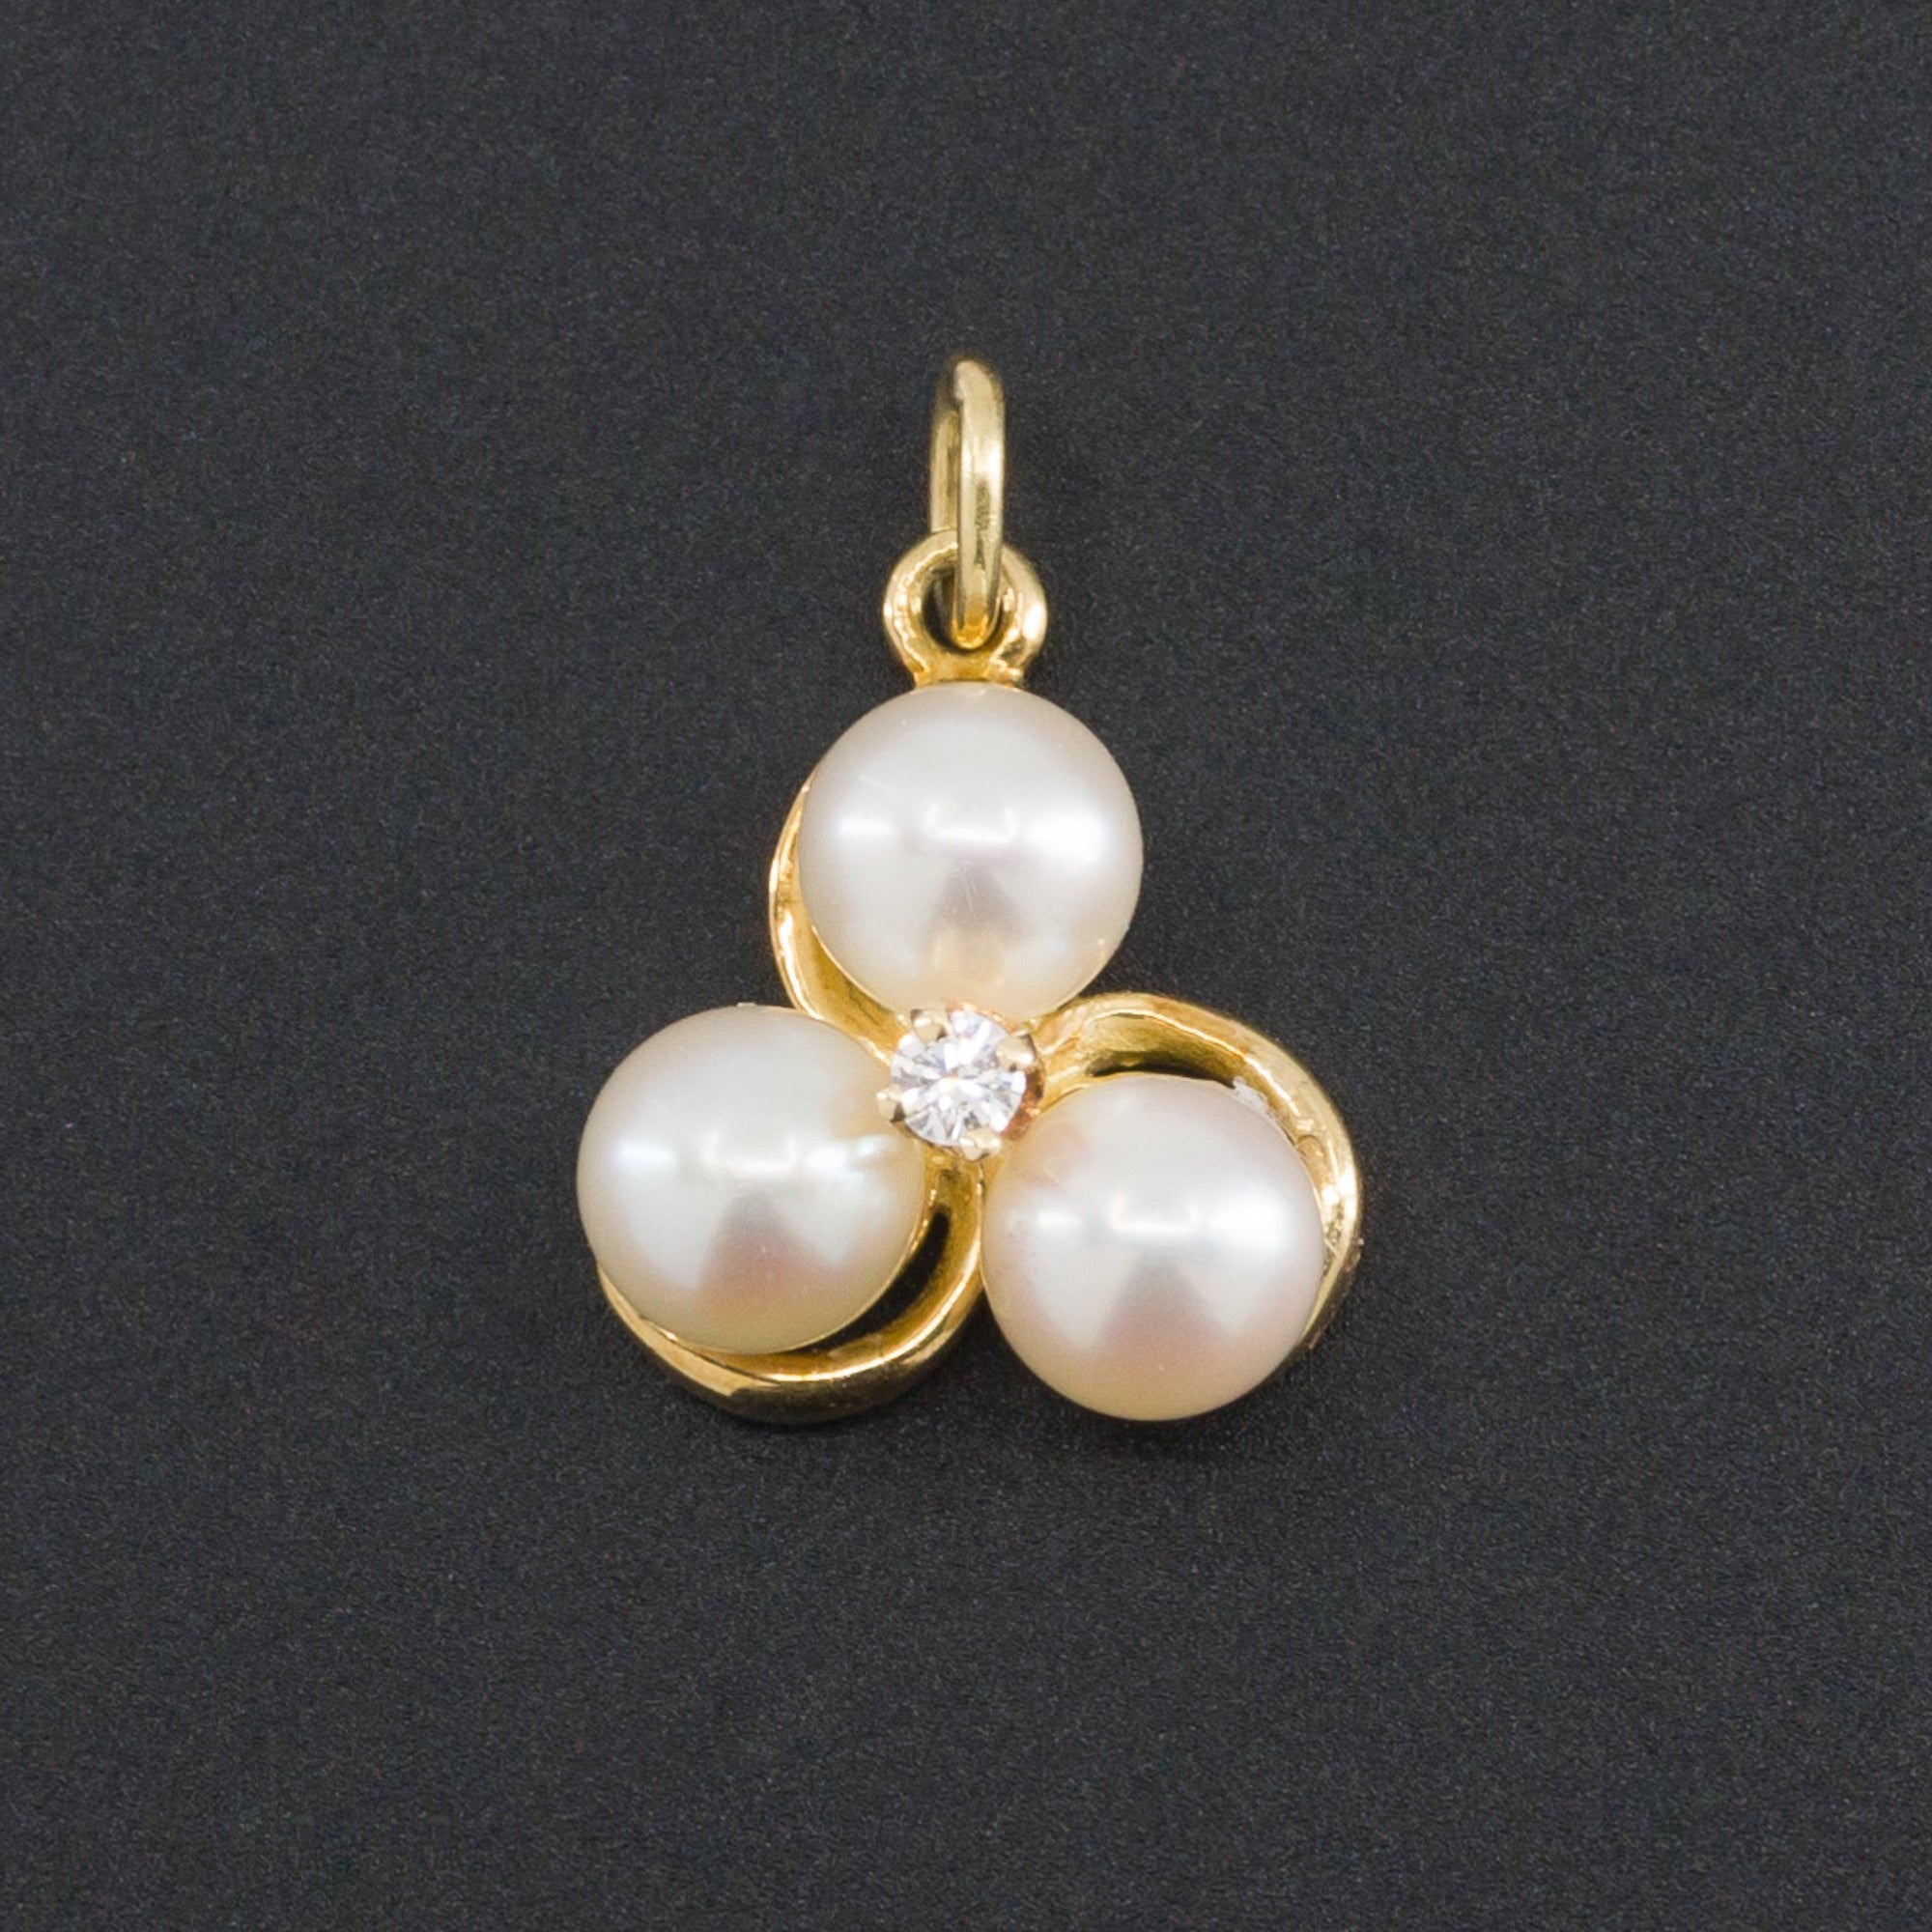 Vintage Pearl & Diamond Charm | Vintage Charm | 18k Pearl and Diamond Pendant